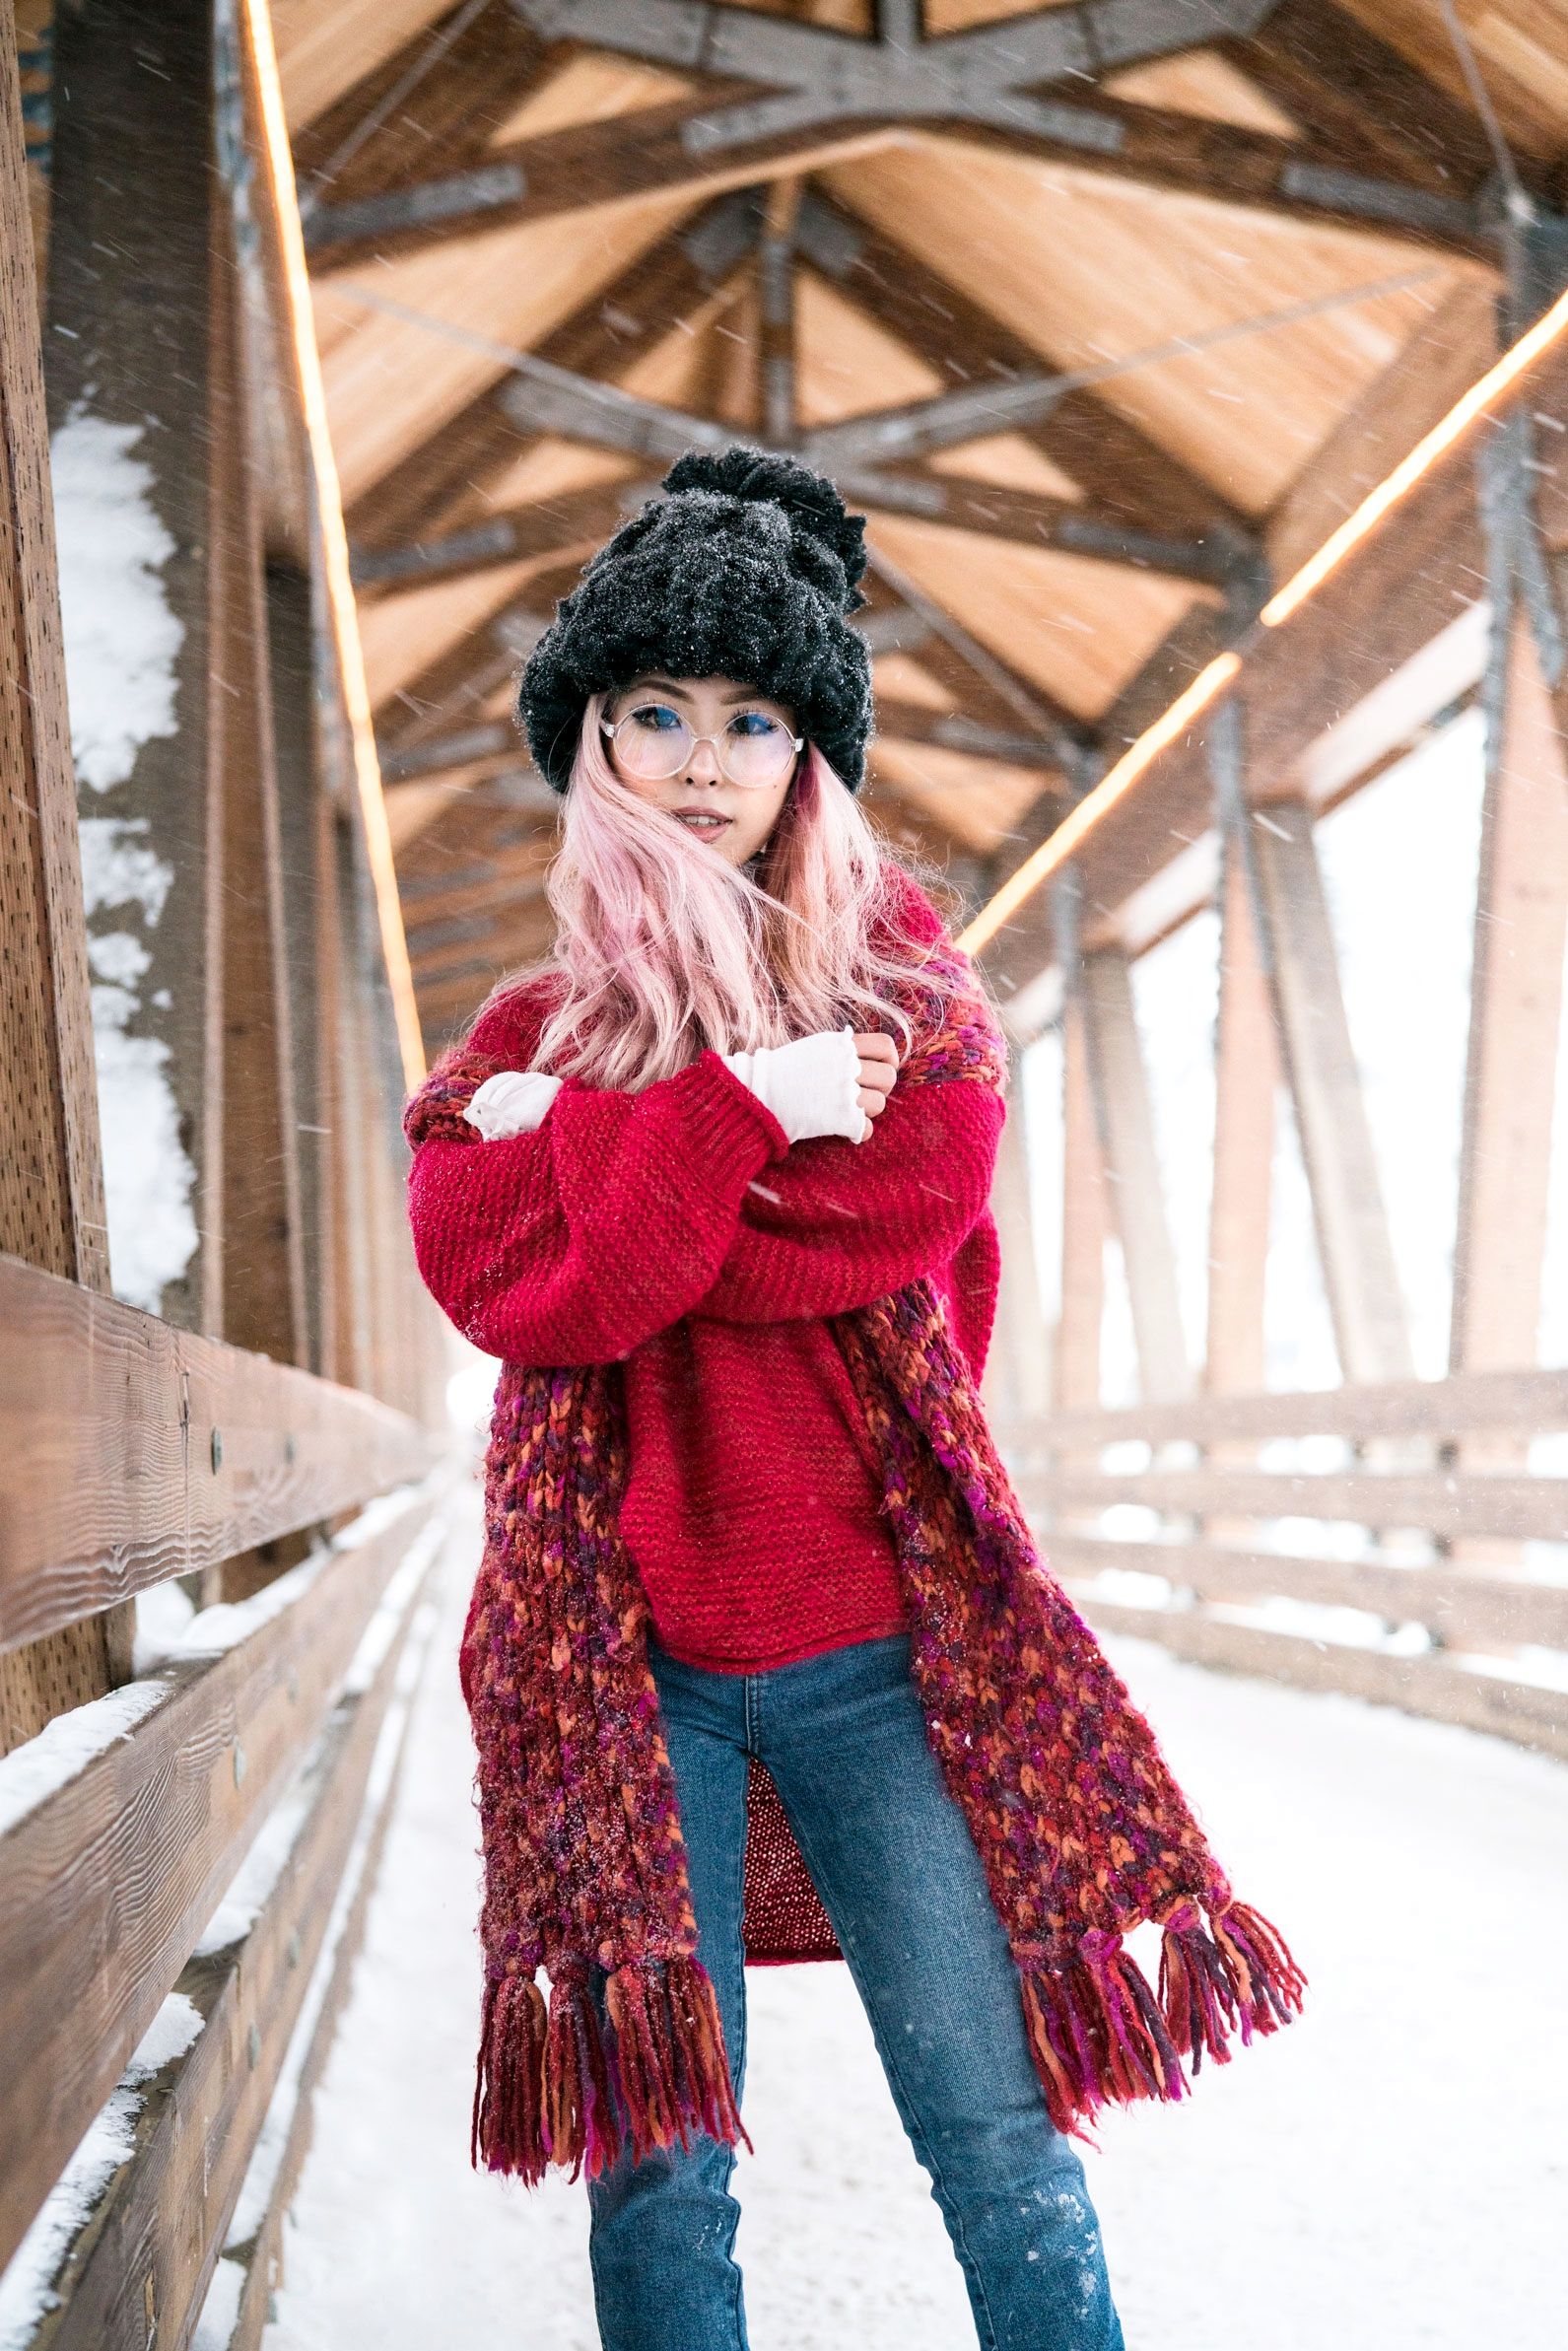 H&M Multi Colored Scarf, Transparent Clear Lens Glasses, Free people All Mine Sweater, Free People Modern Cuff Layering Top, Free People Ace High Rise Jeans, Free People Bobbi Chunky Pom Beanie, EGO Ankle Boots, Aika's Love Closet, Seattle Fashion Blogger from Japan, Pink Hair 4